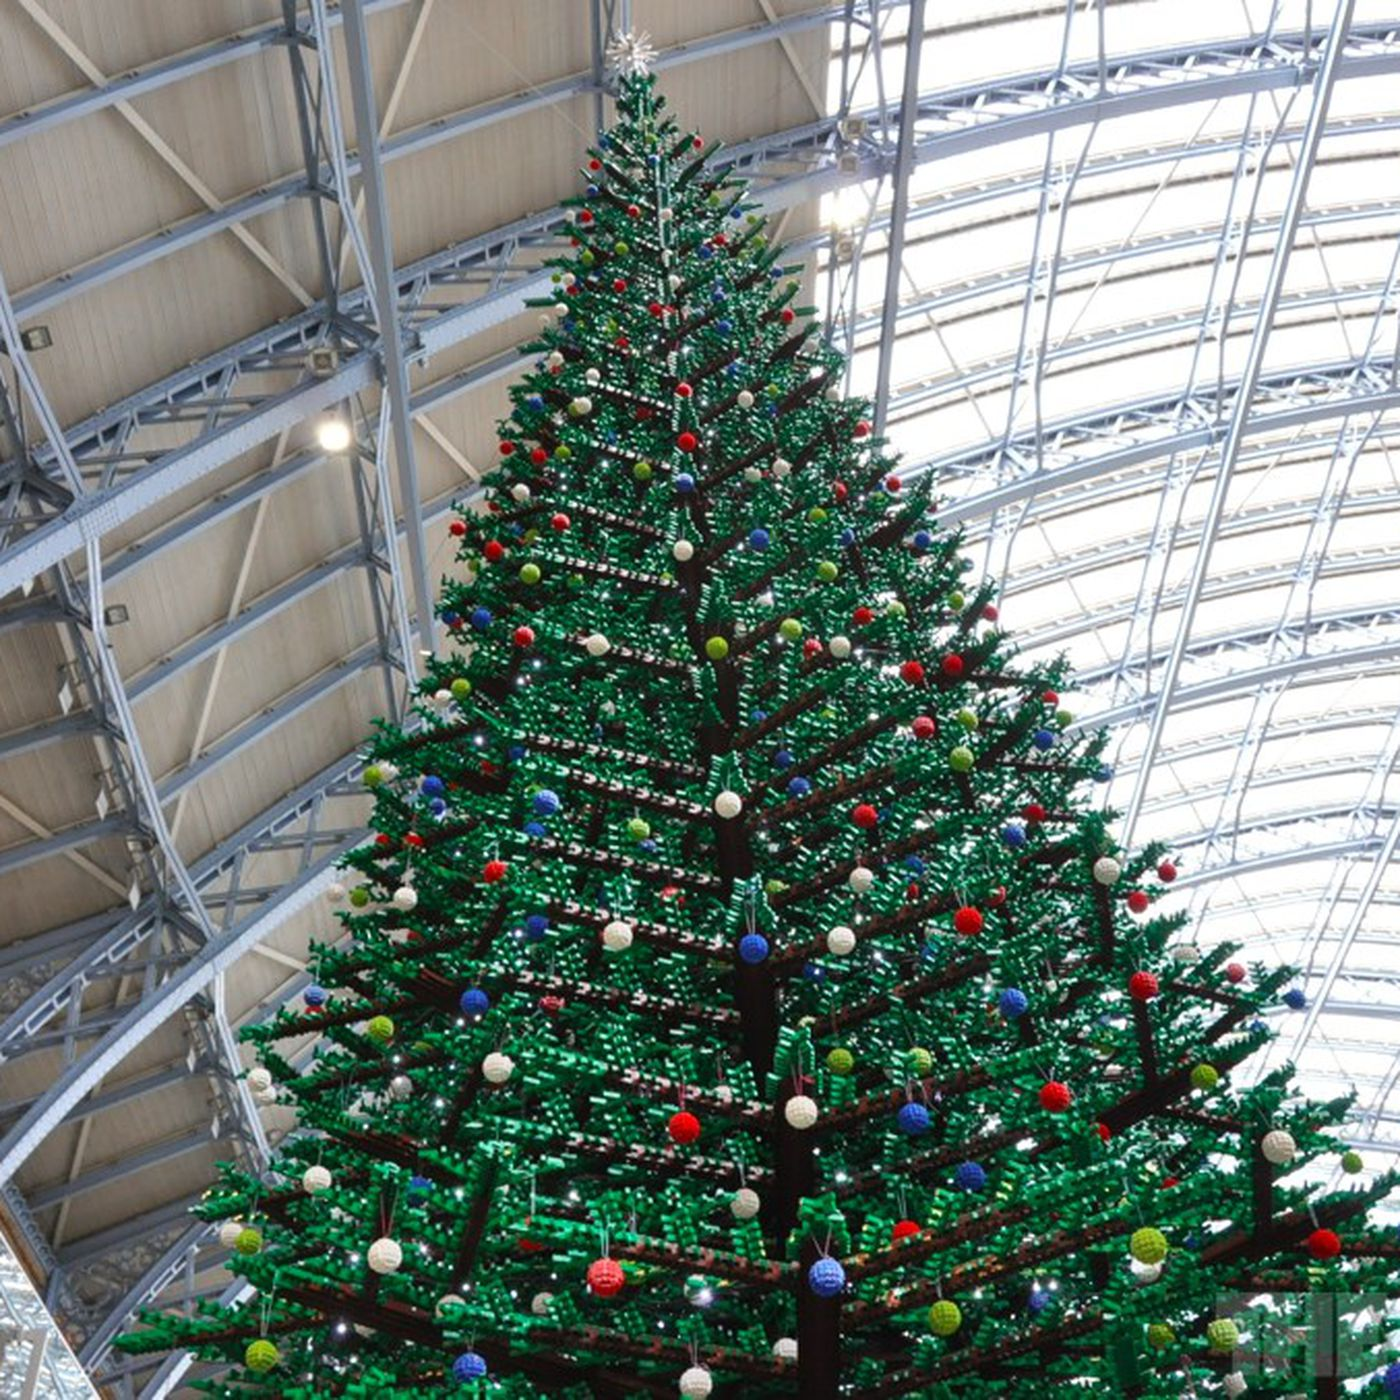 33 foot Lego Christmas tree erected in London s St Pancras Station